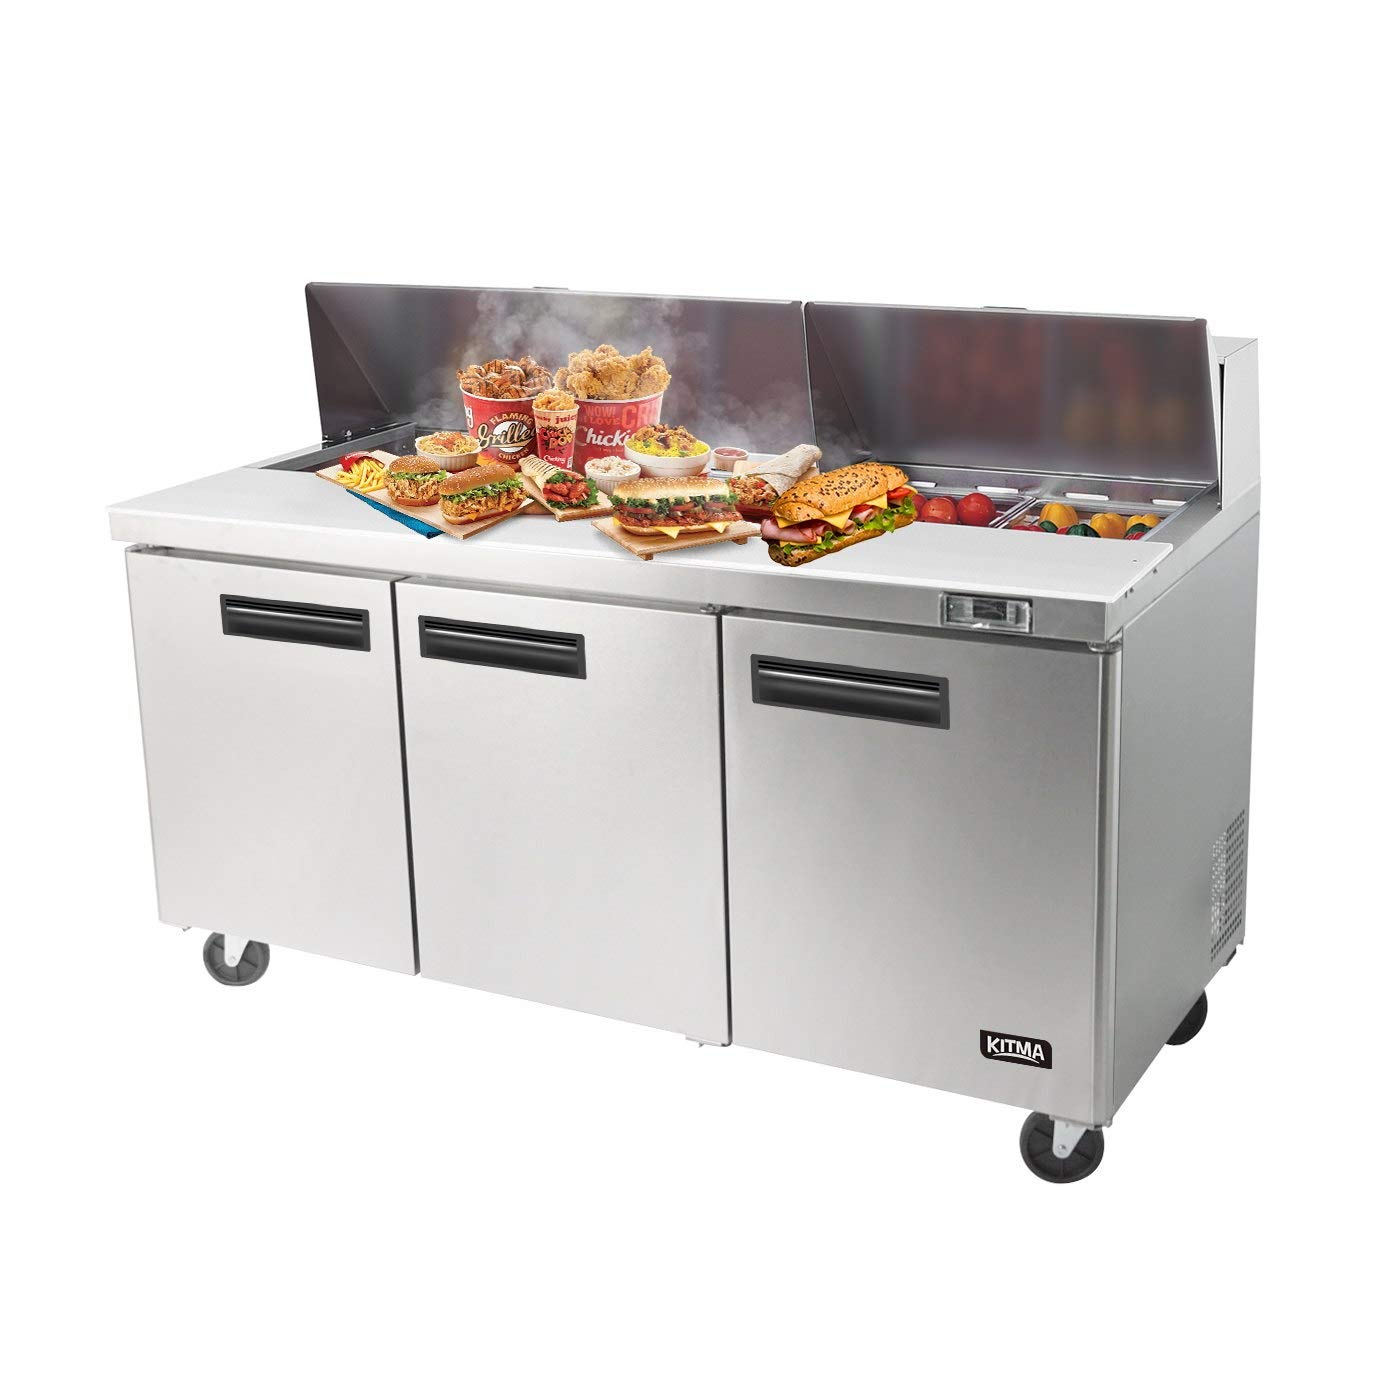 Ft 33 /°F 17.2 Cu 45/°F Commercial Mega Top Stainless Steel Pizza Salad Prep Table with 24 Pans KITMA 60 Double Door Sandwich Prep Table Refrigerator